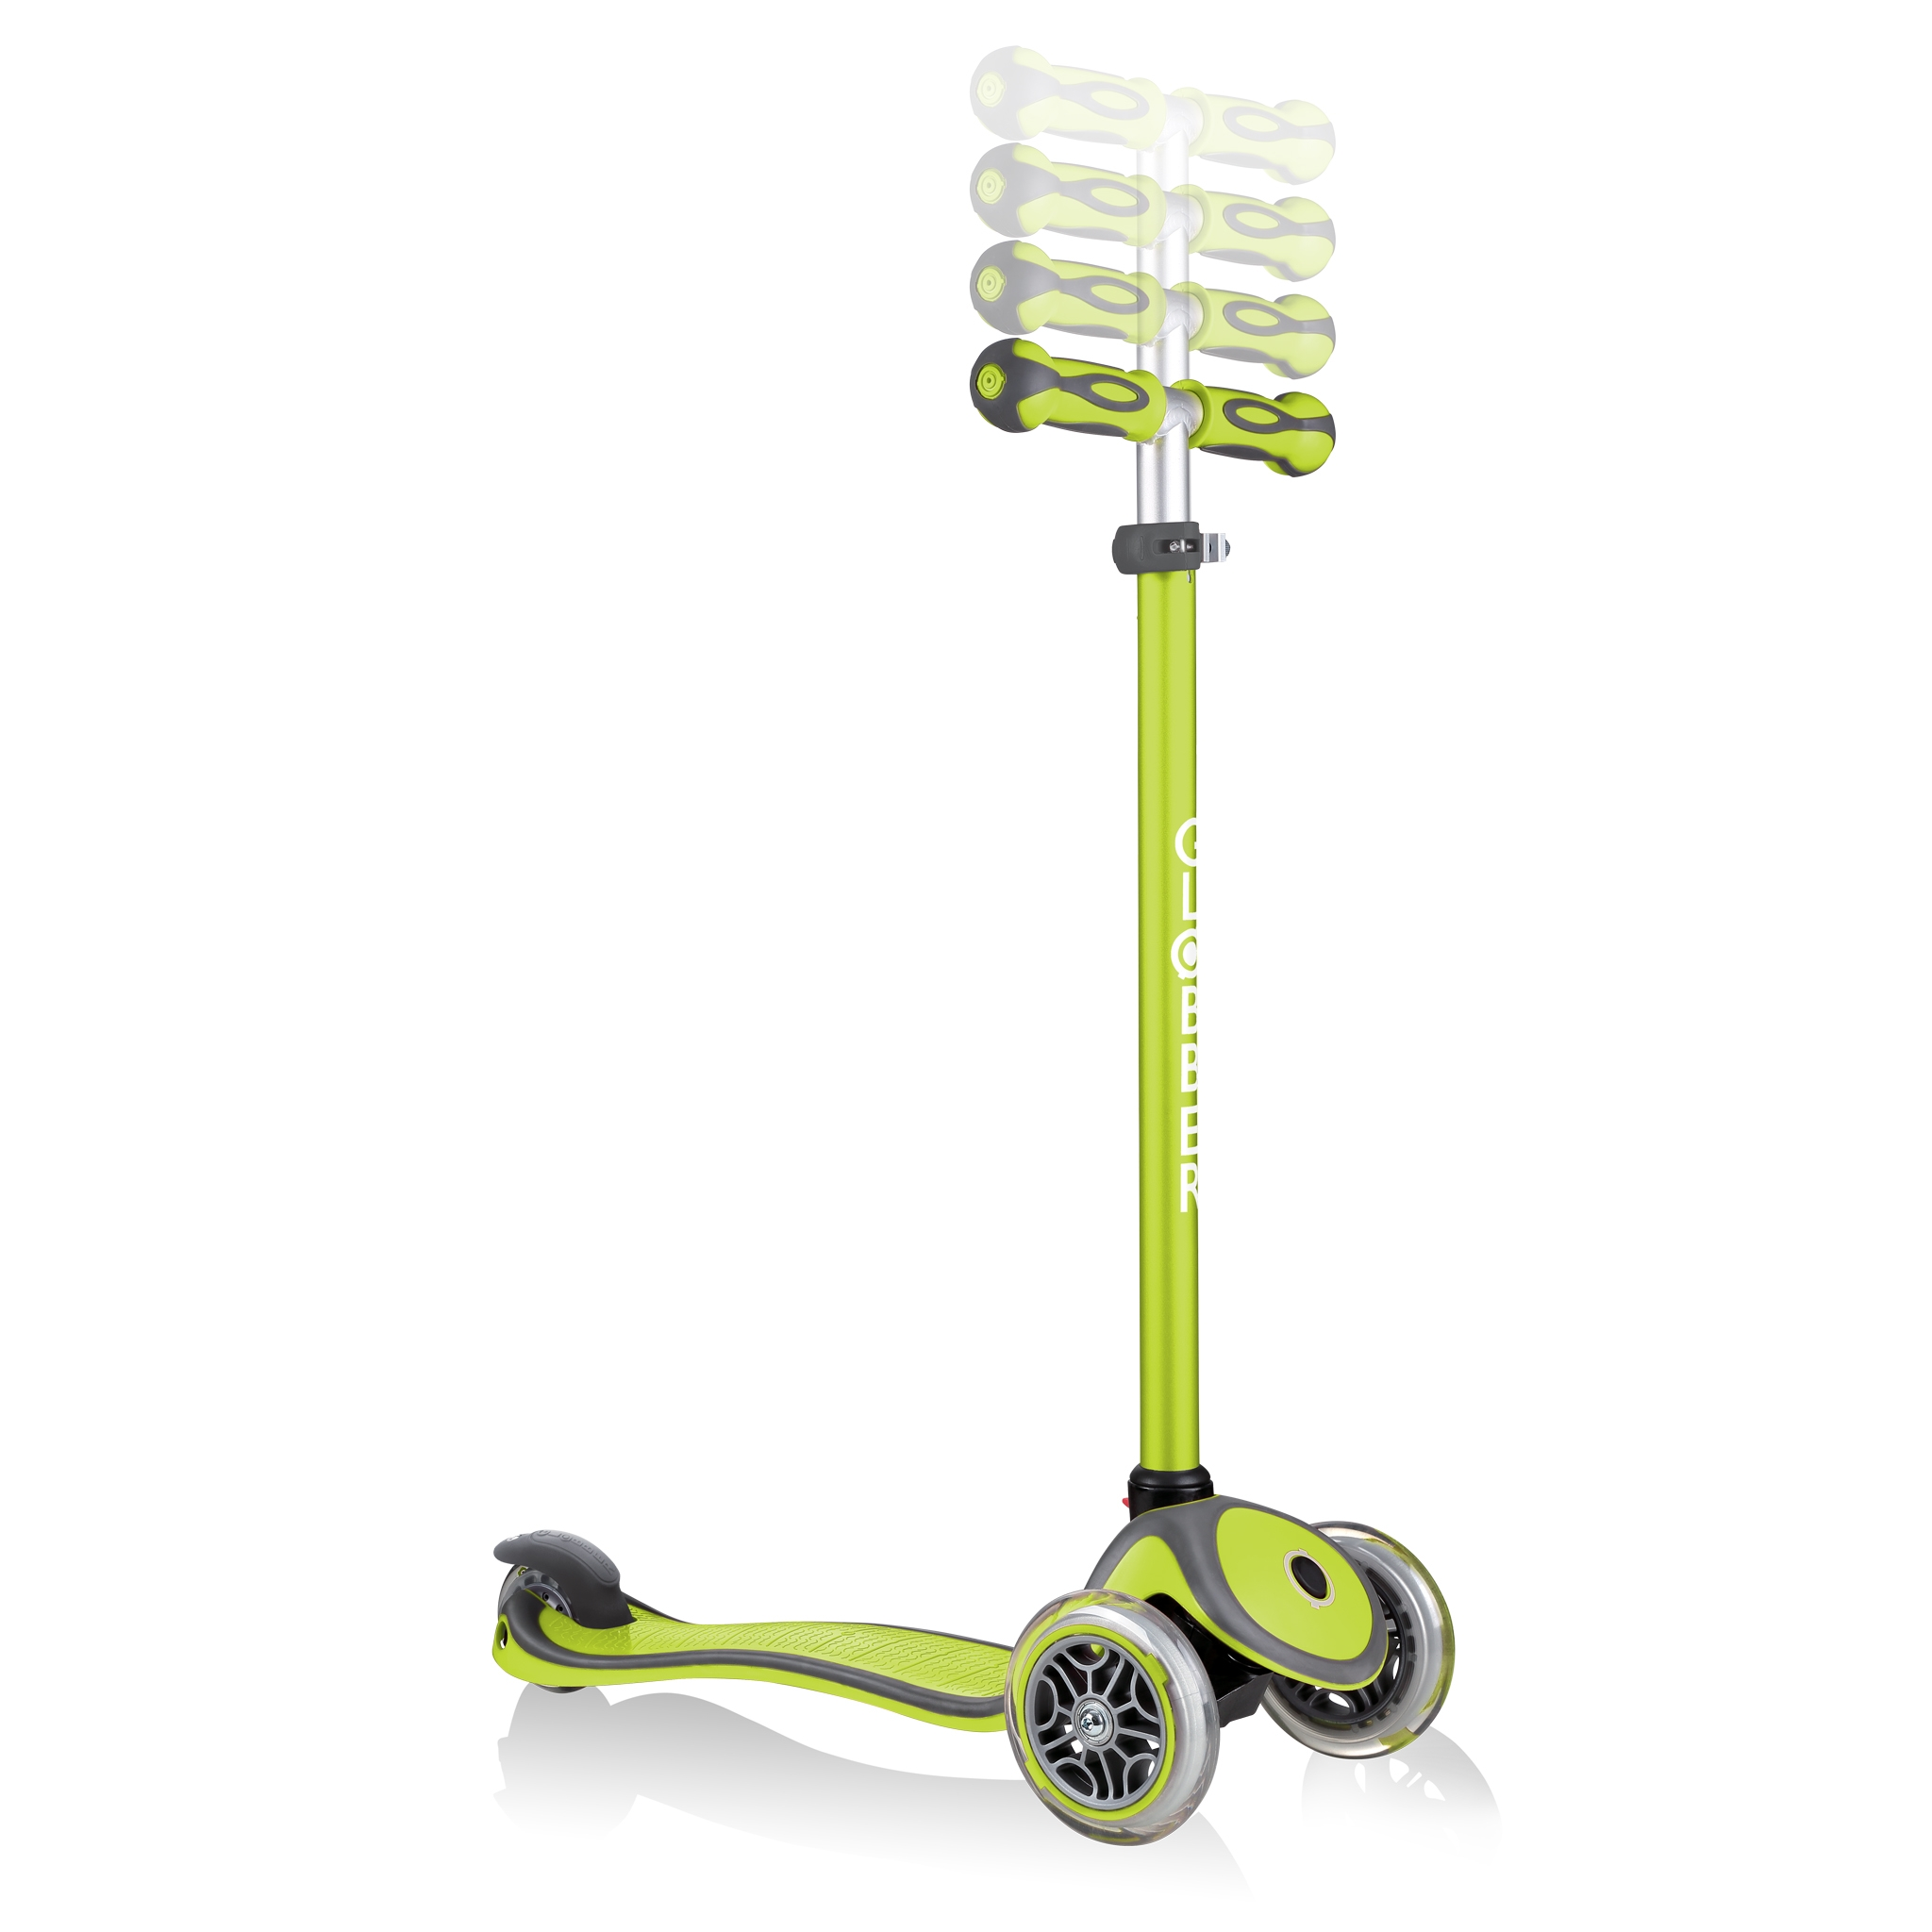 GO-UP-COMFORT-scooter-with-seat-4-height-adjustable-T-bar-lime-green 5